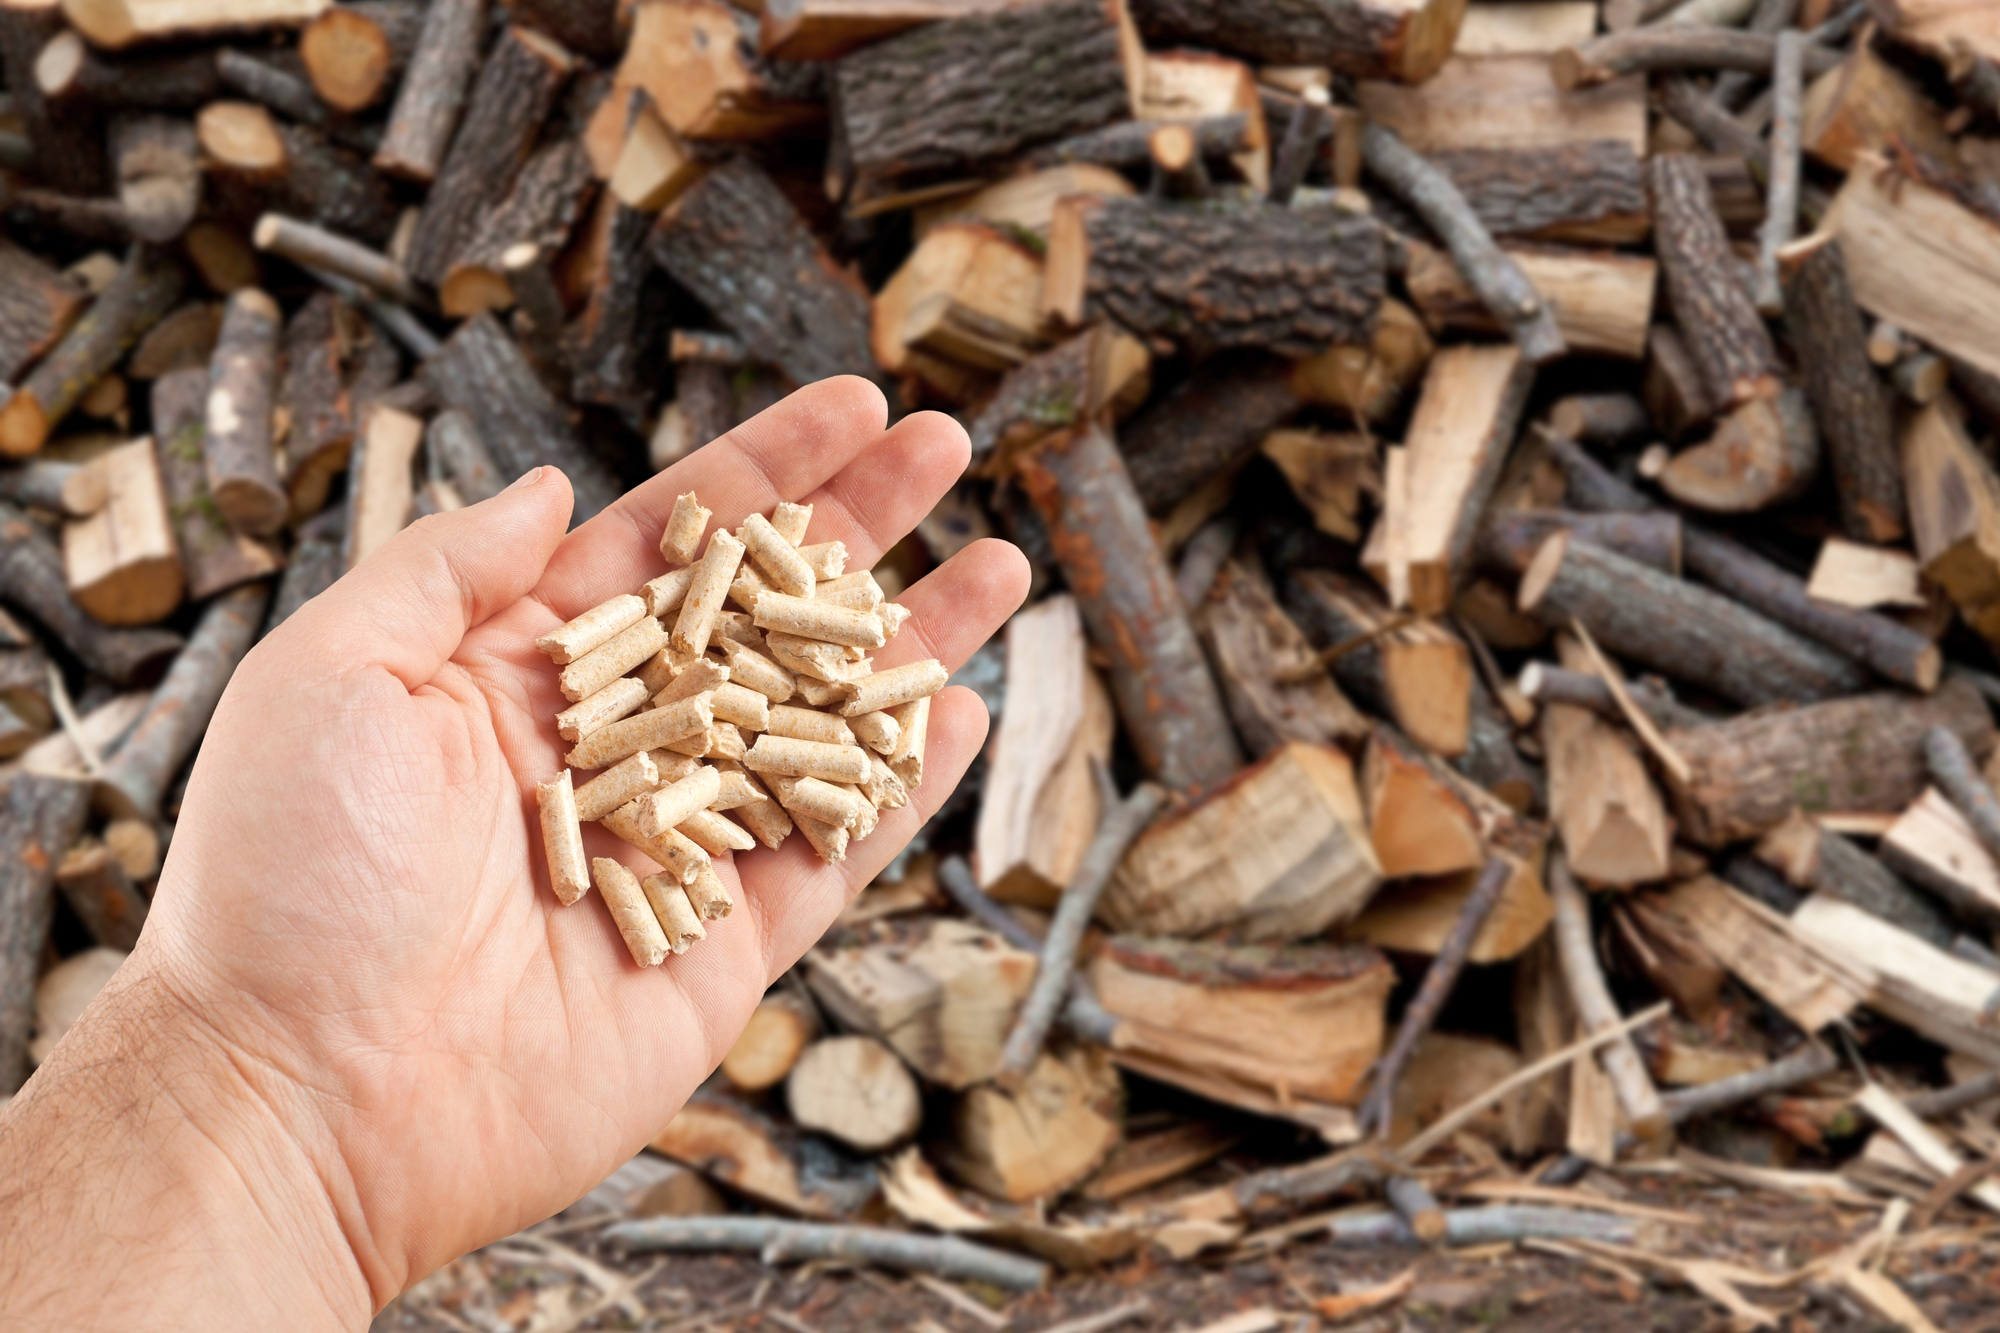 Wood waste to thermal fuel (pellets).